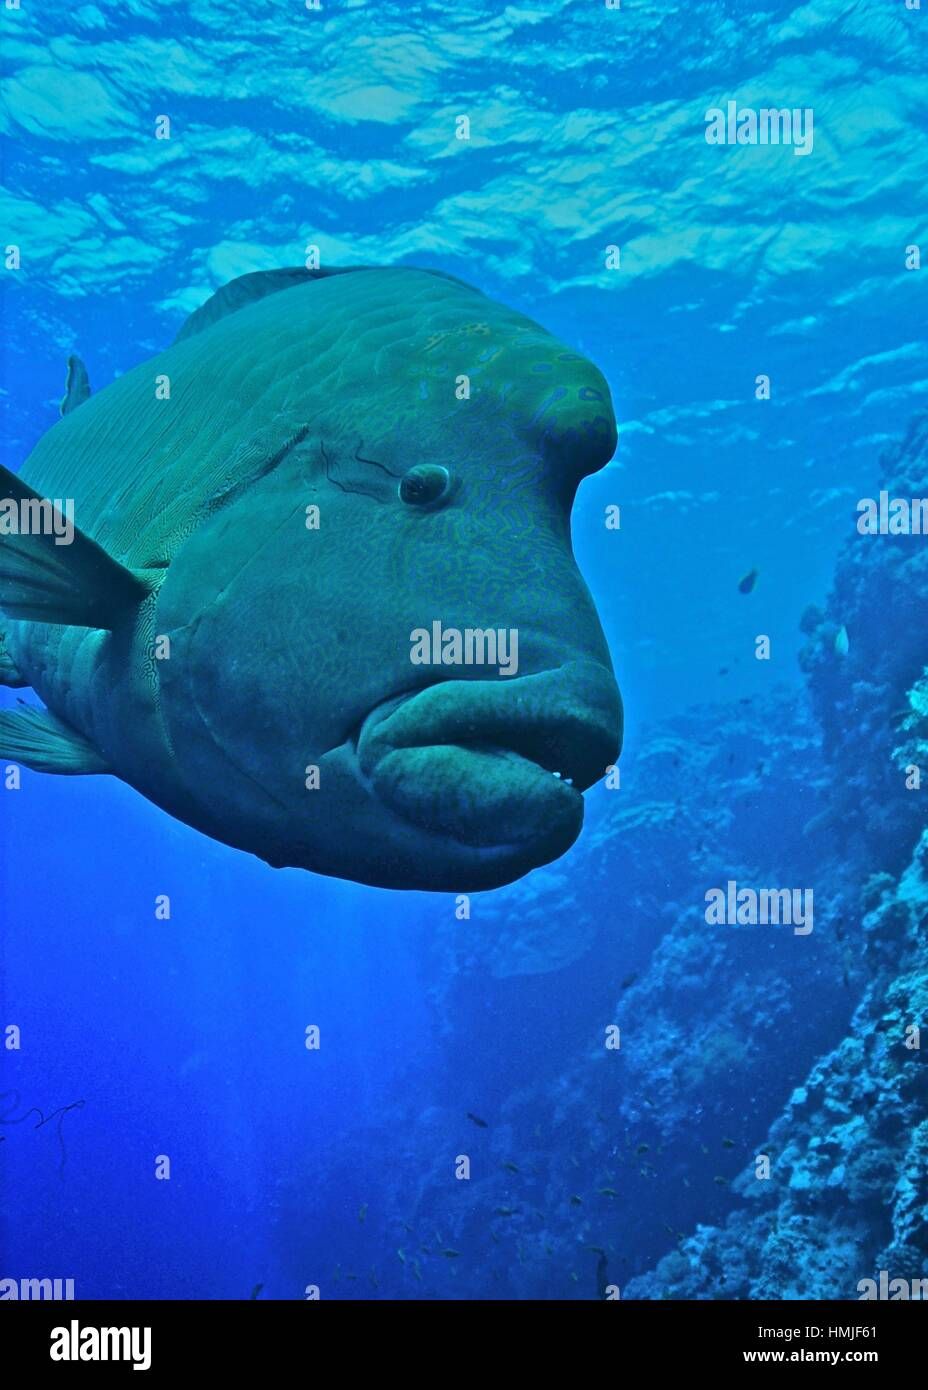 The humphead wrasse (Cheilinus undulatus) is listed as endangered in the IUCN Red List of Threatened Species. Photographed - Stock Image